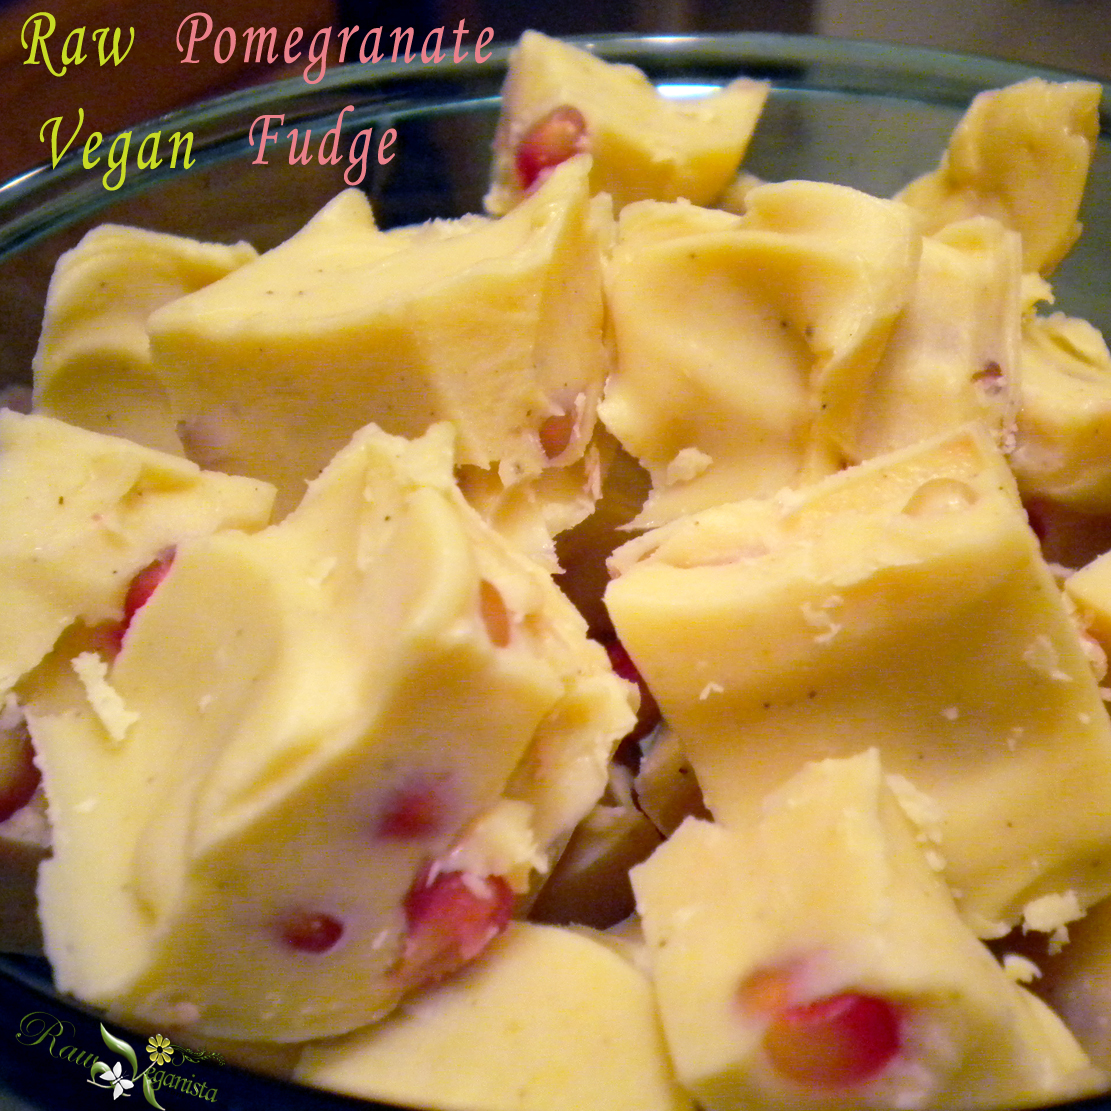 Pomegranate White Chocolate Fudge